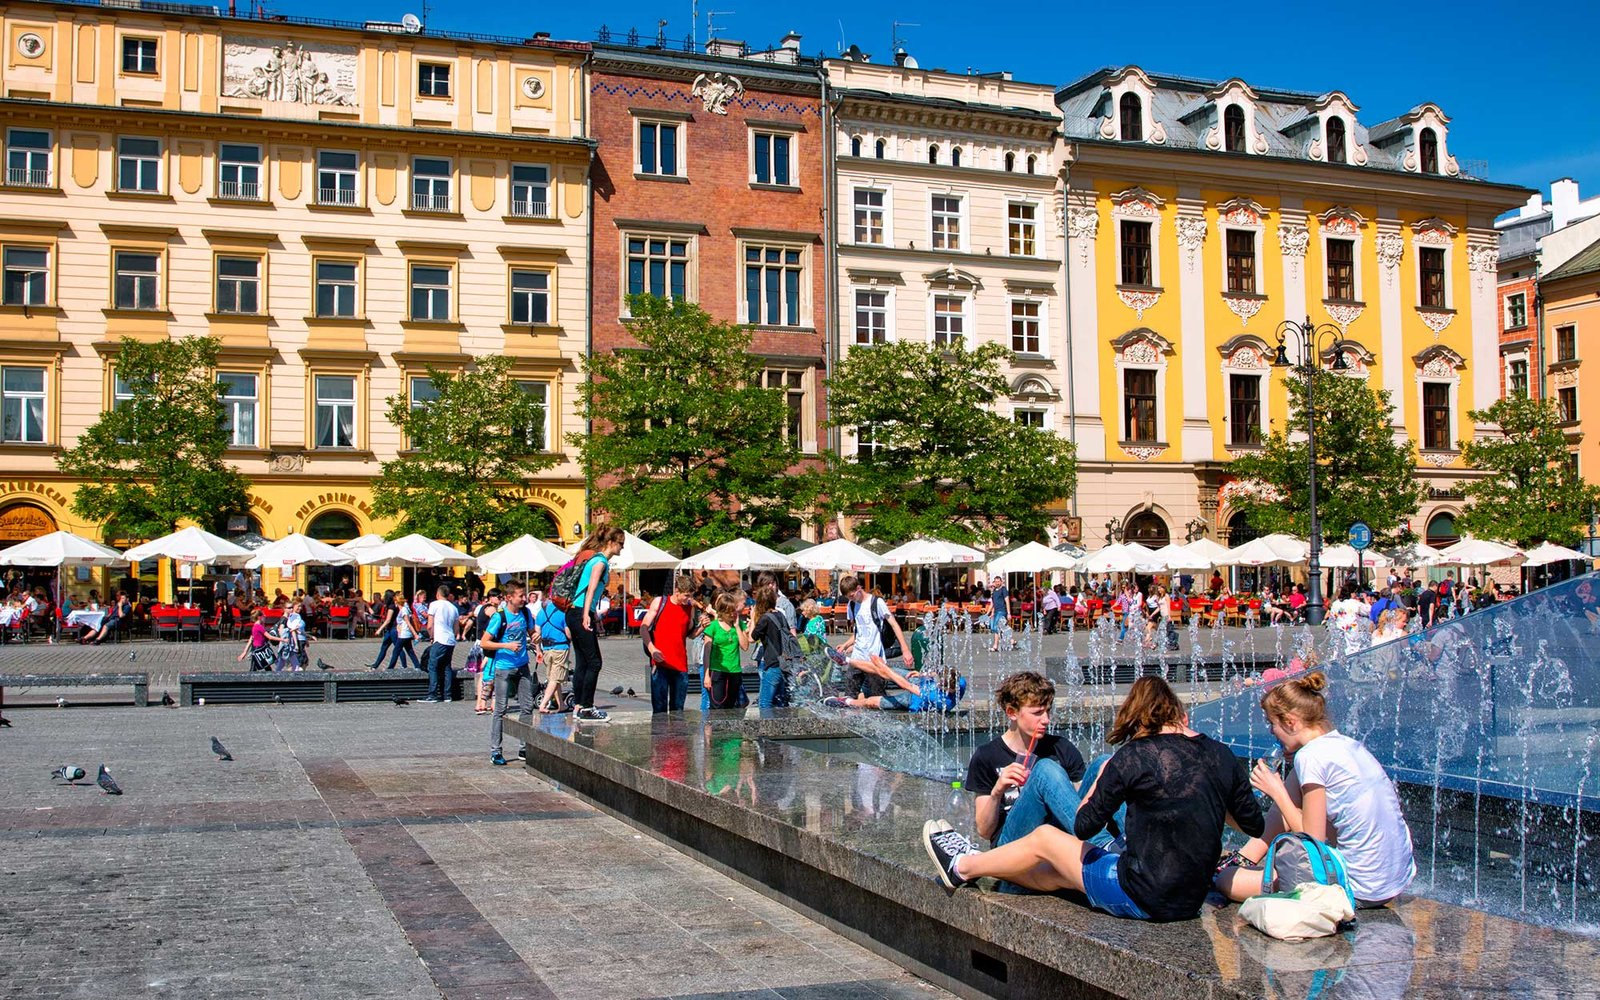 krakow city center